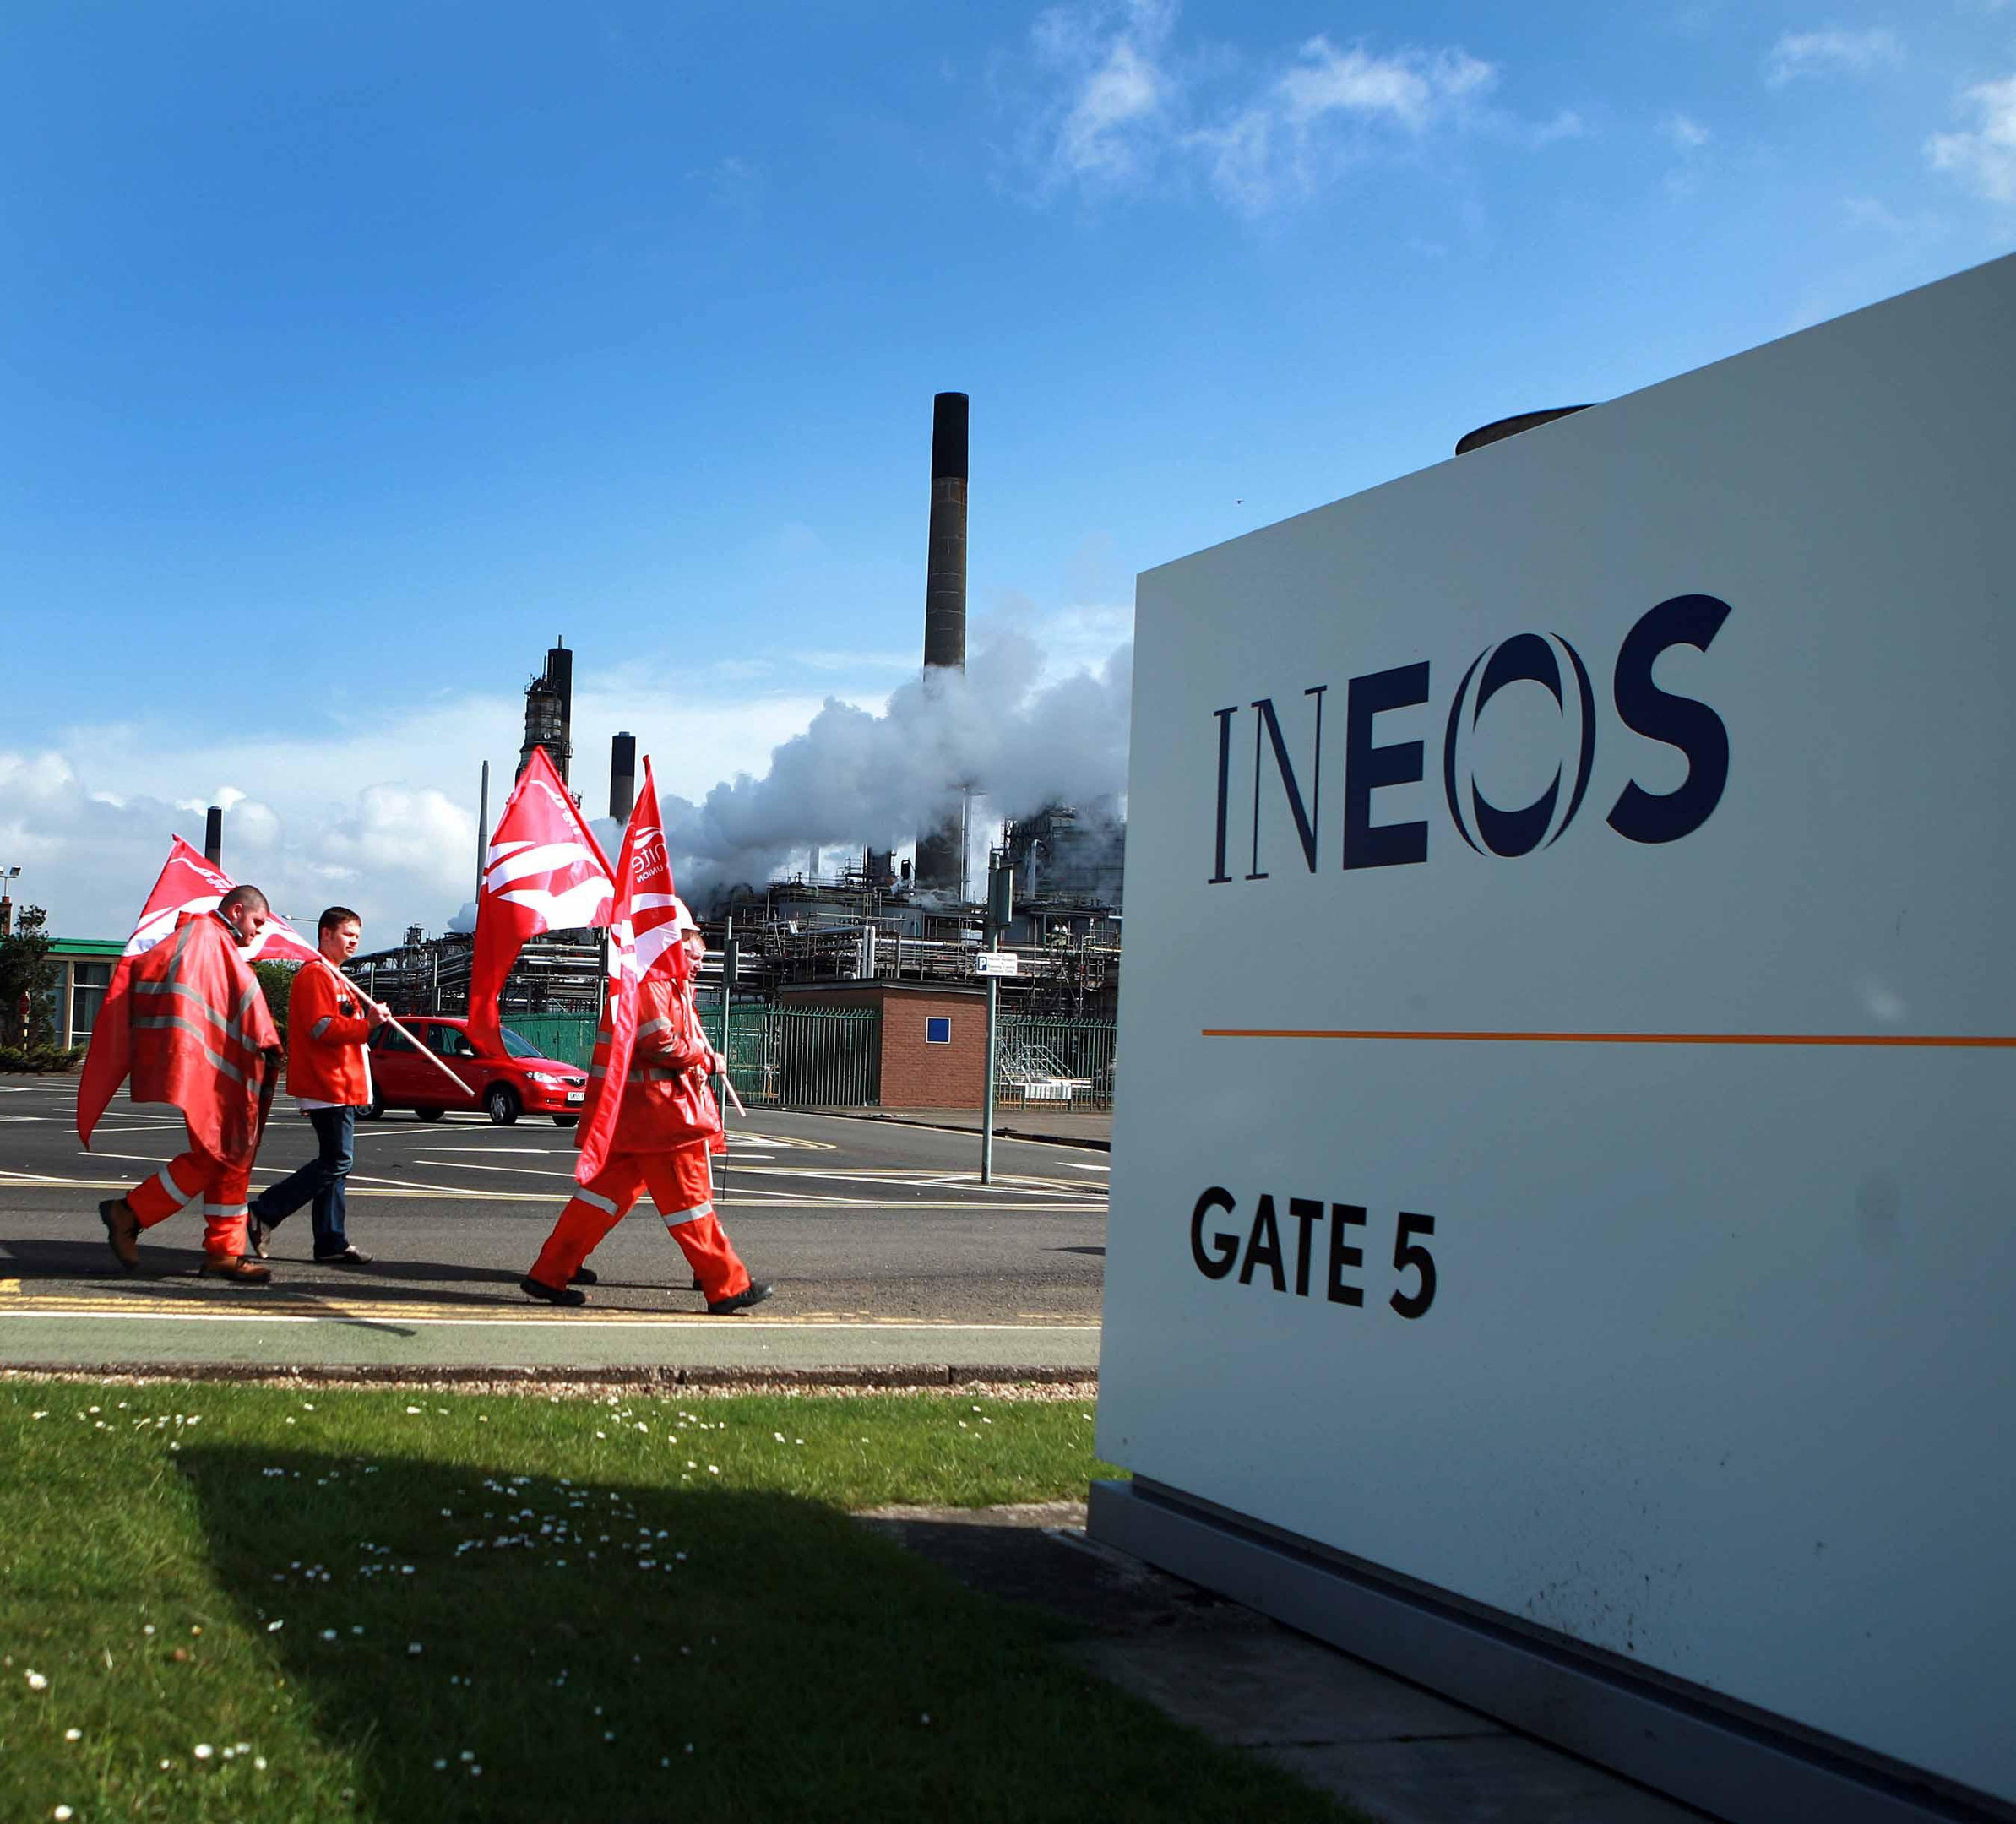 Flag waving Unite supporters outside Ineos Grangemouth during the 2013 dispute